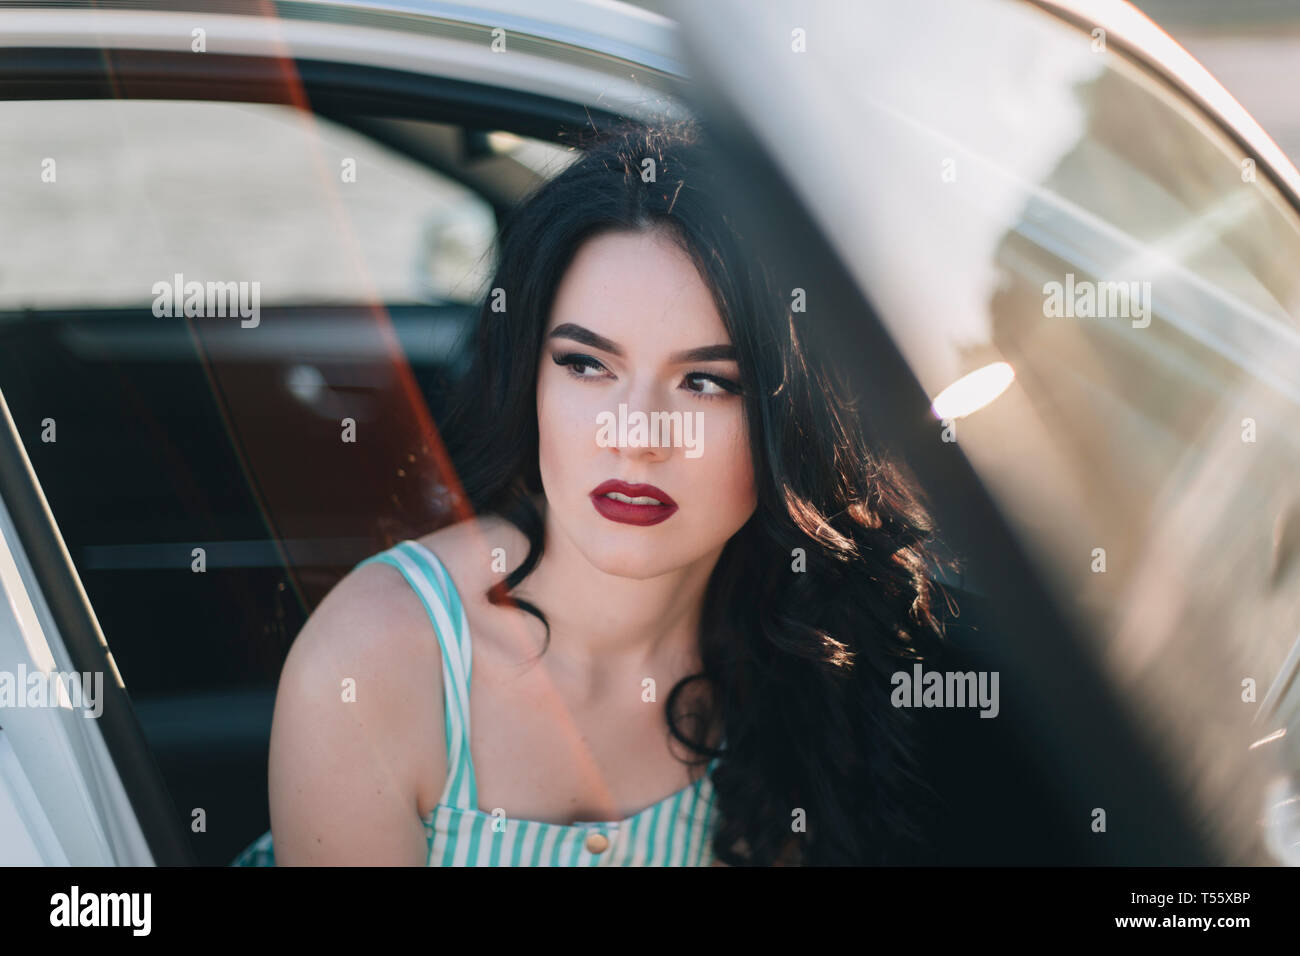 Young woman wearing red lipstick sitting in car Stock Photo